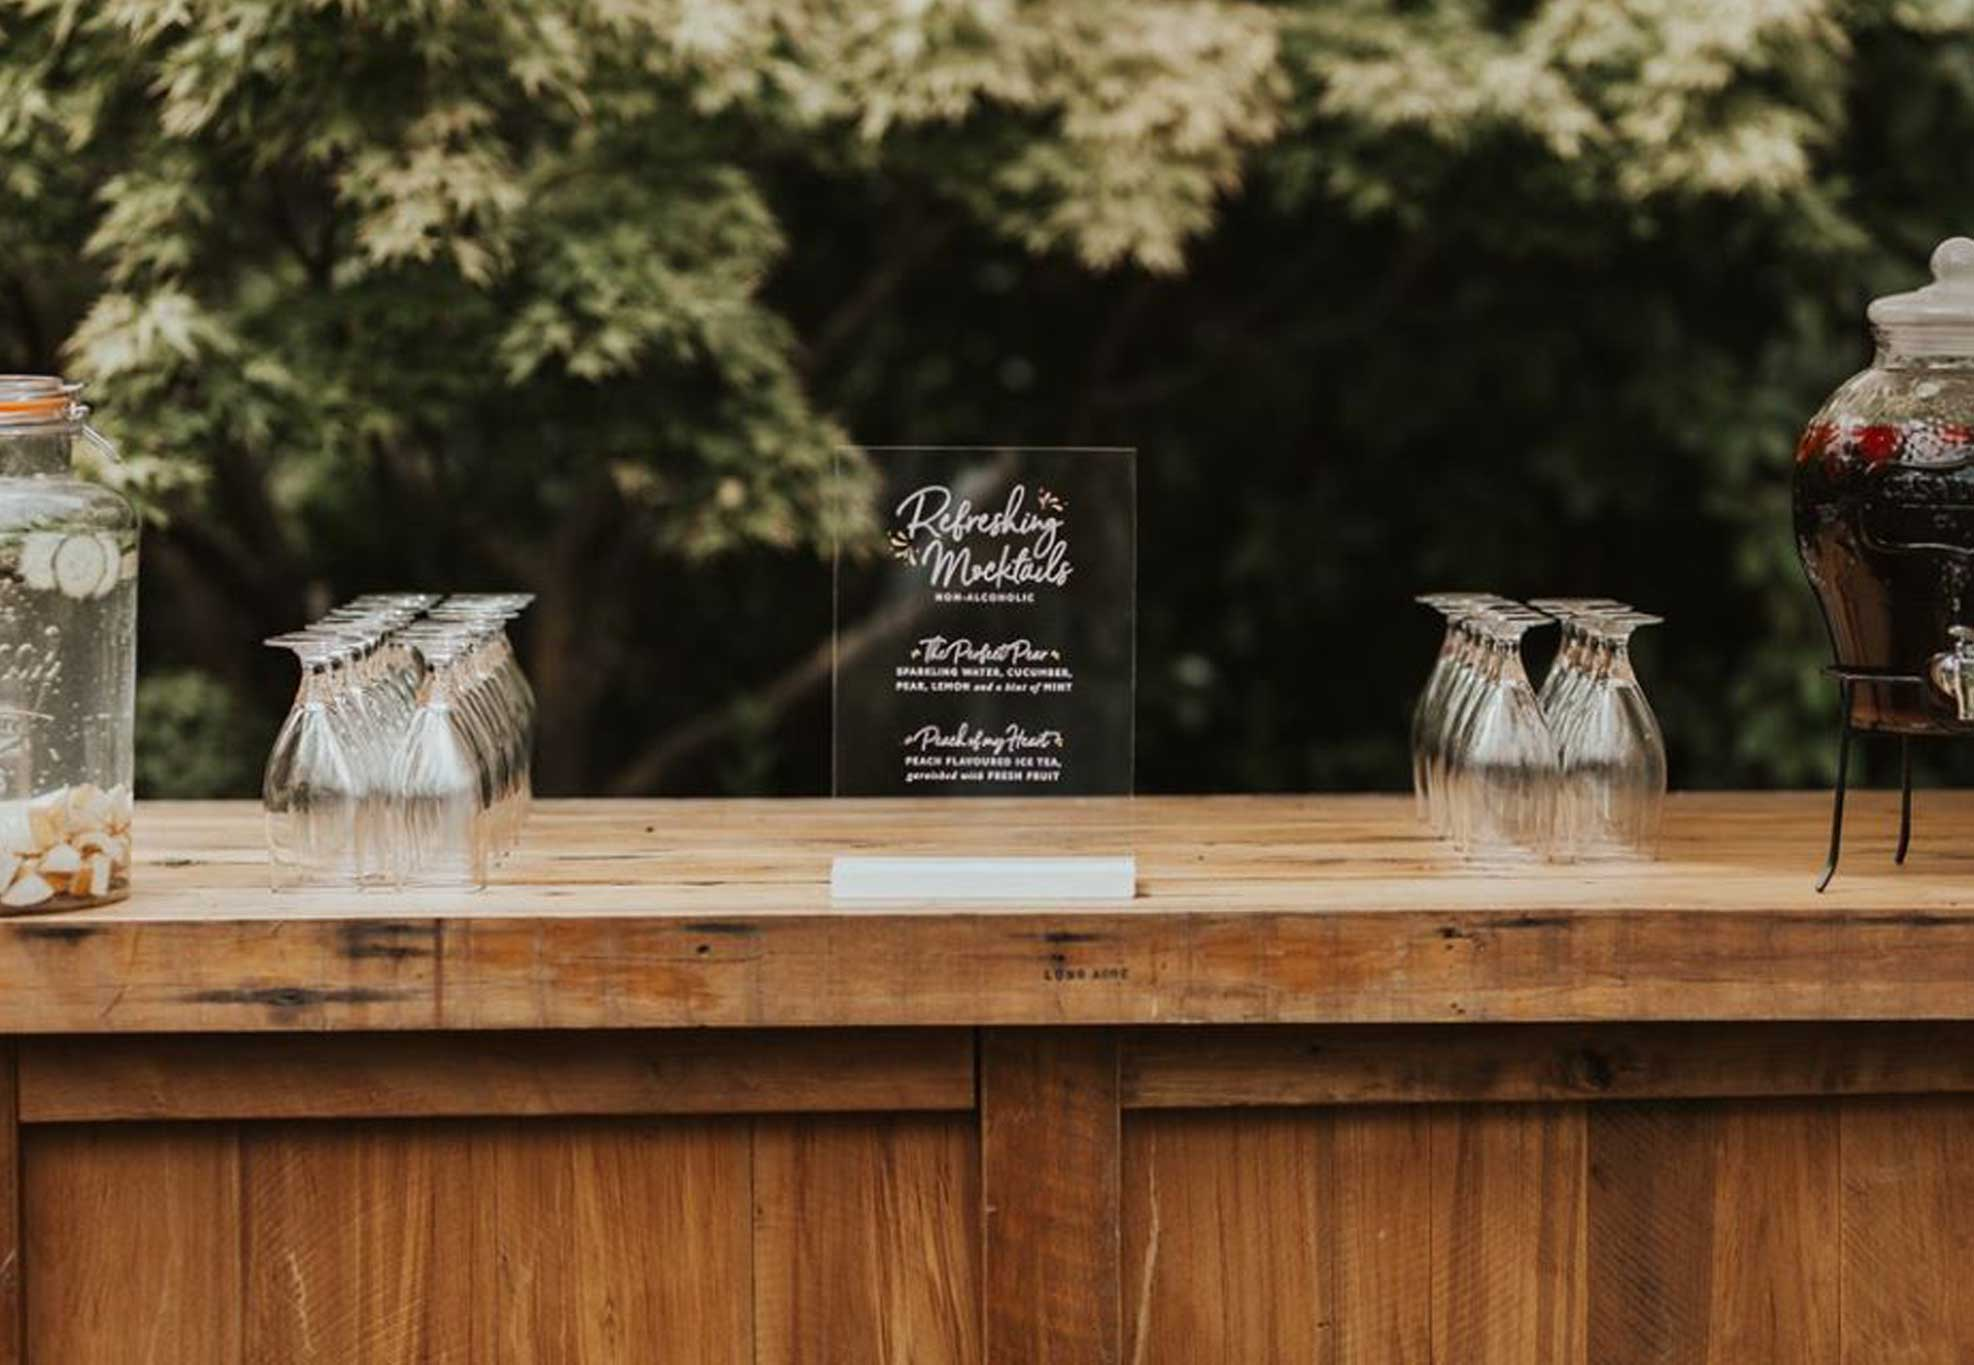 silk-estate-marquee-weddings-and-events-styling-and-hire-glassware-steam-beeer-glass